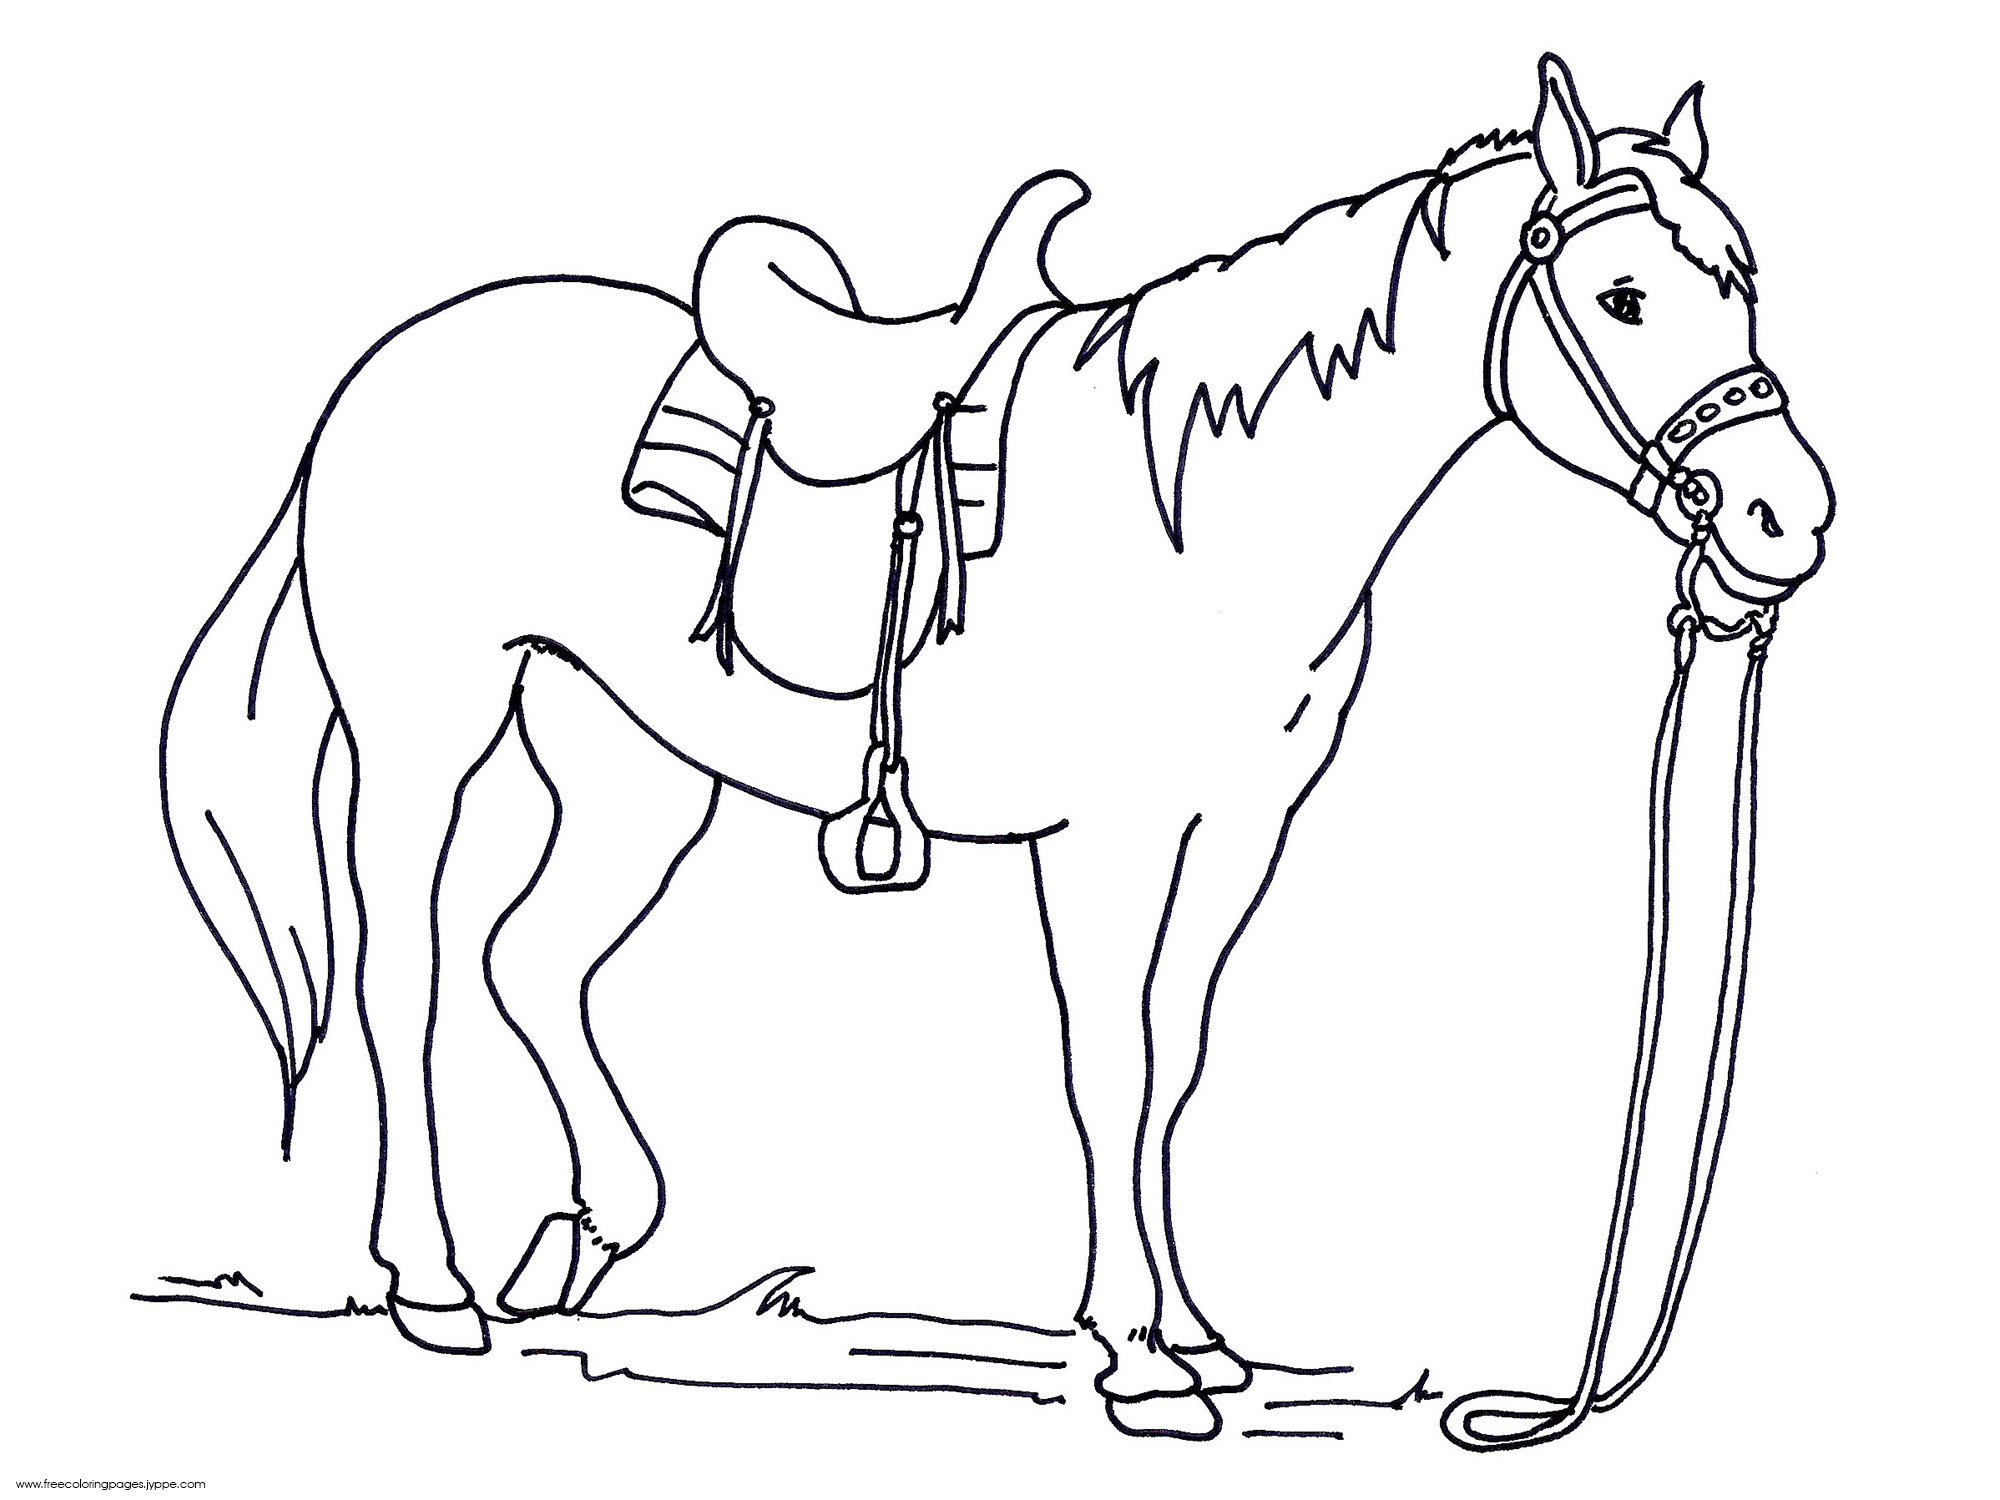 Horses Running Drawing At Getdrawings Com Free For Personal Use